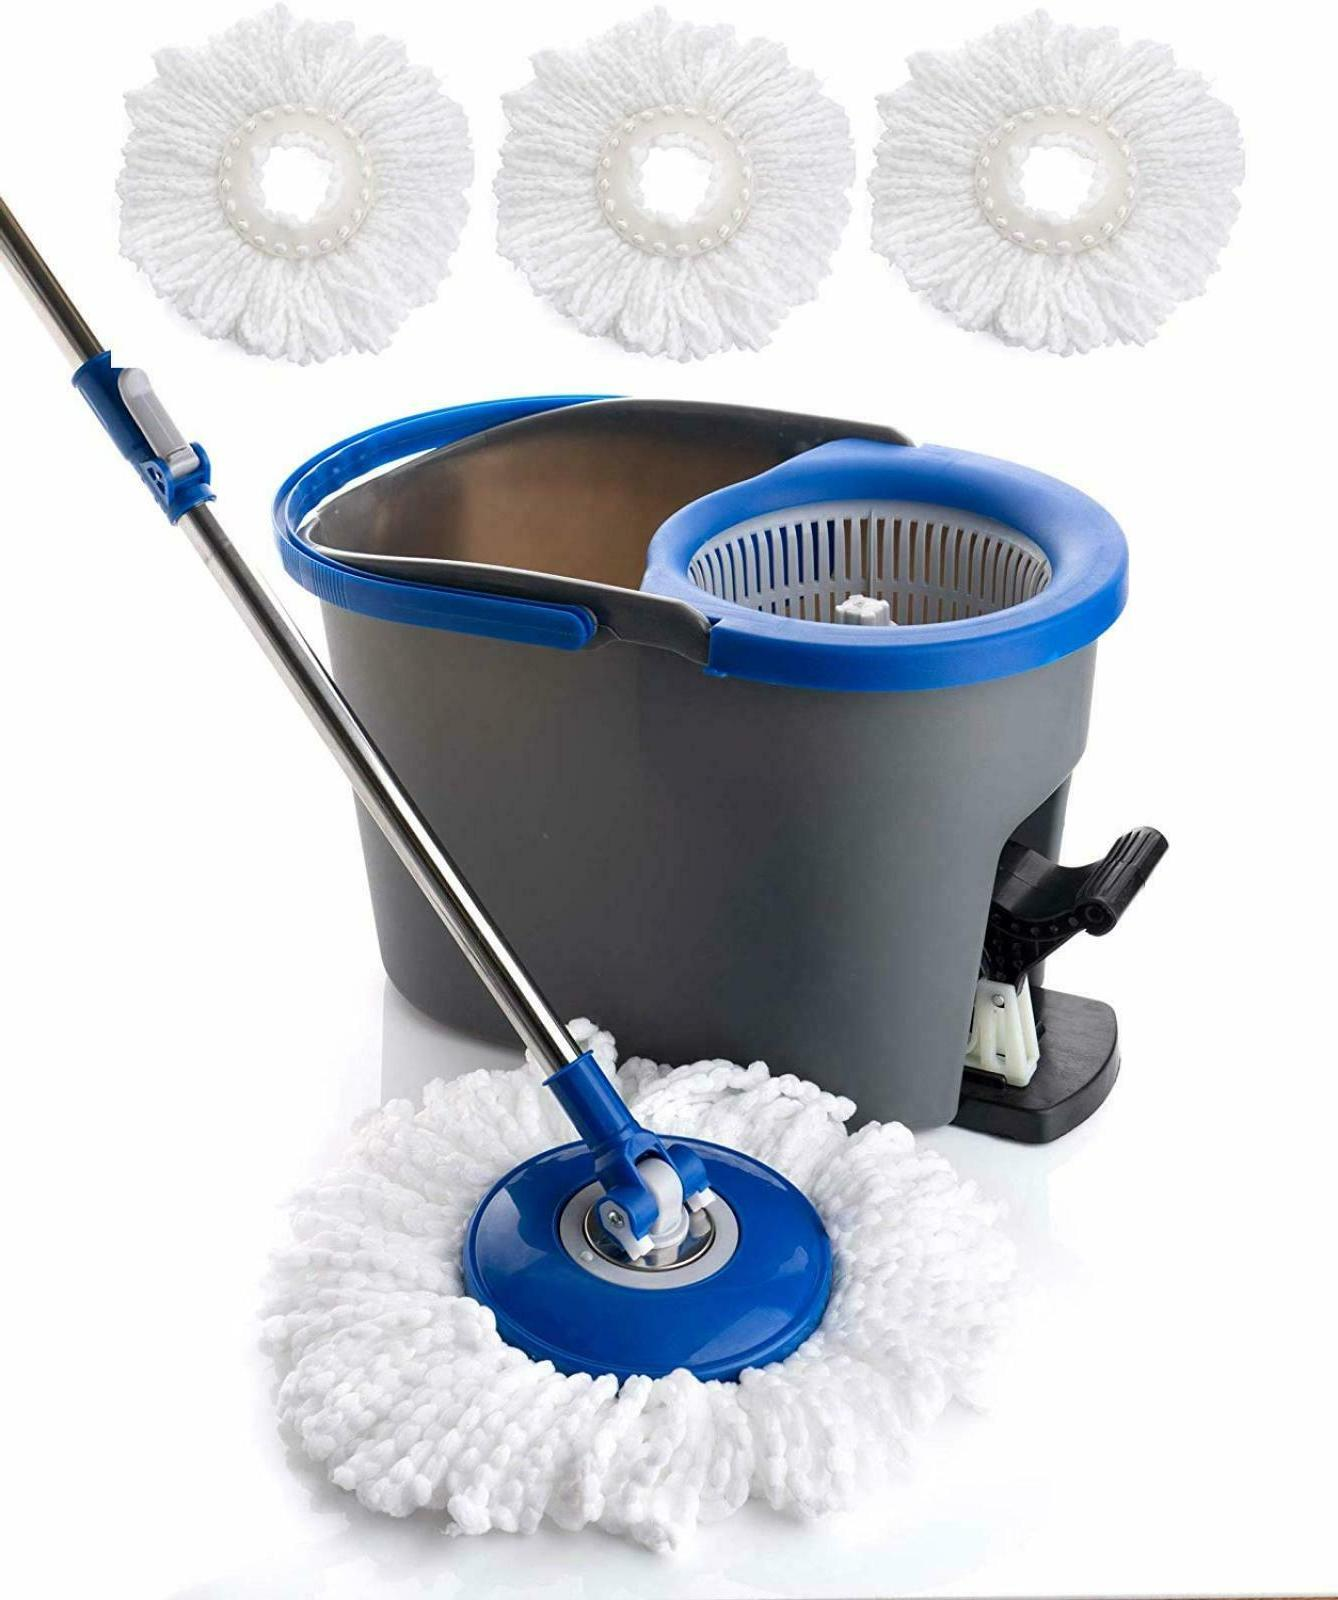 Rolling Spin Mop Cleaning Floor Home System with 3 Microfibe